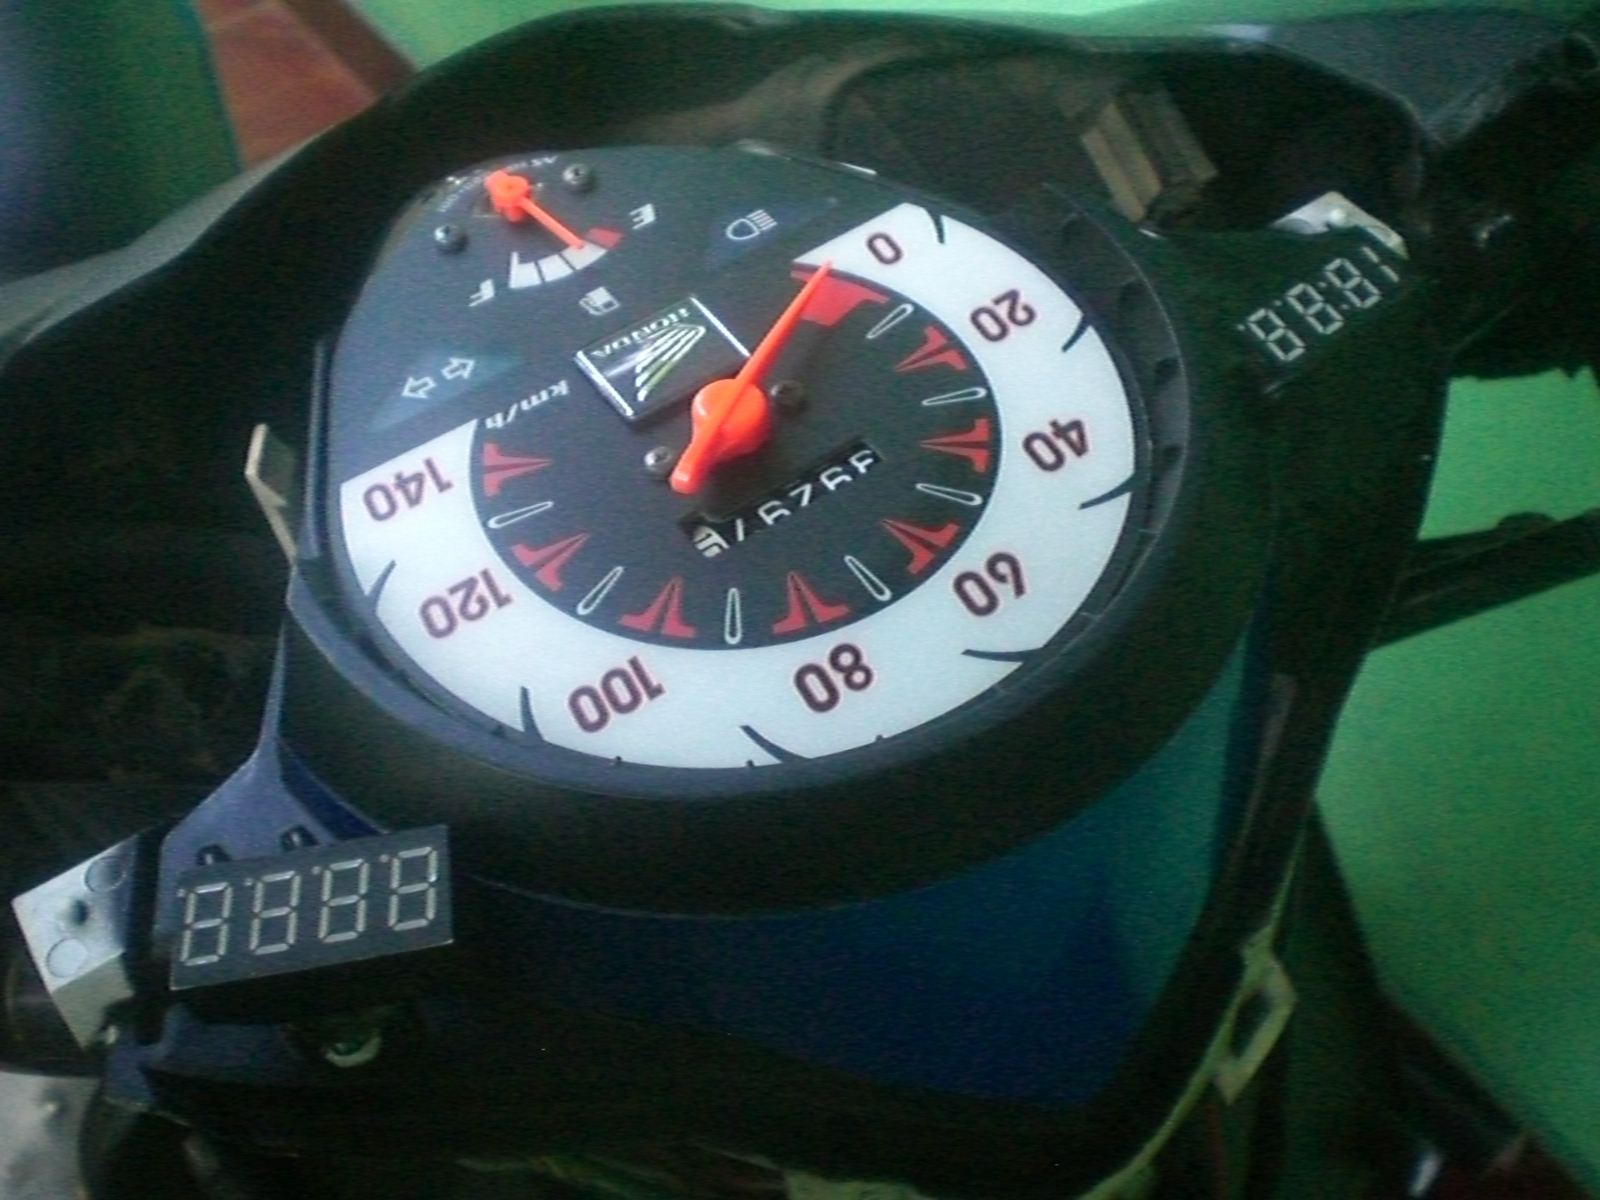 Wiring diagram speedometer vixion globalpay co id jzgreentown crg asfbconference2016 Gallery